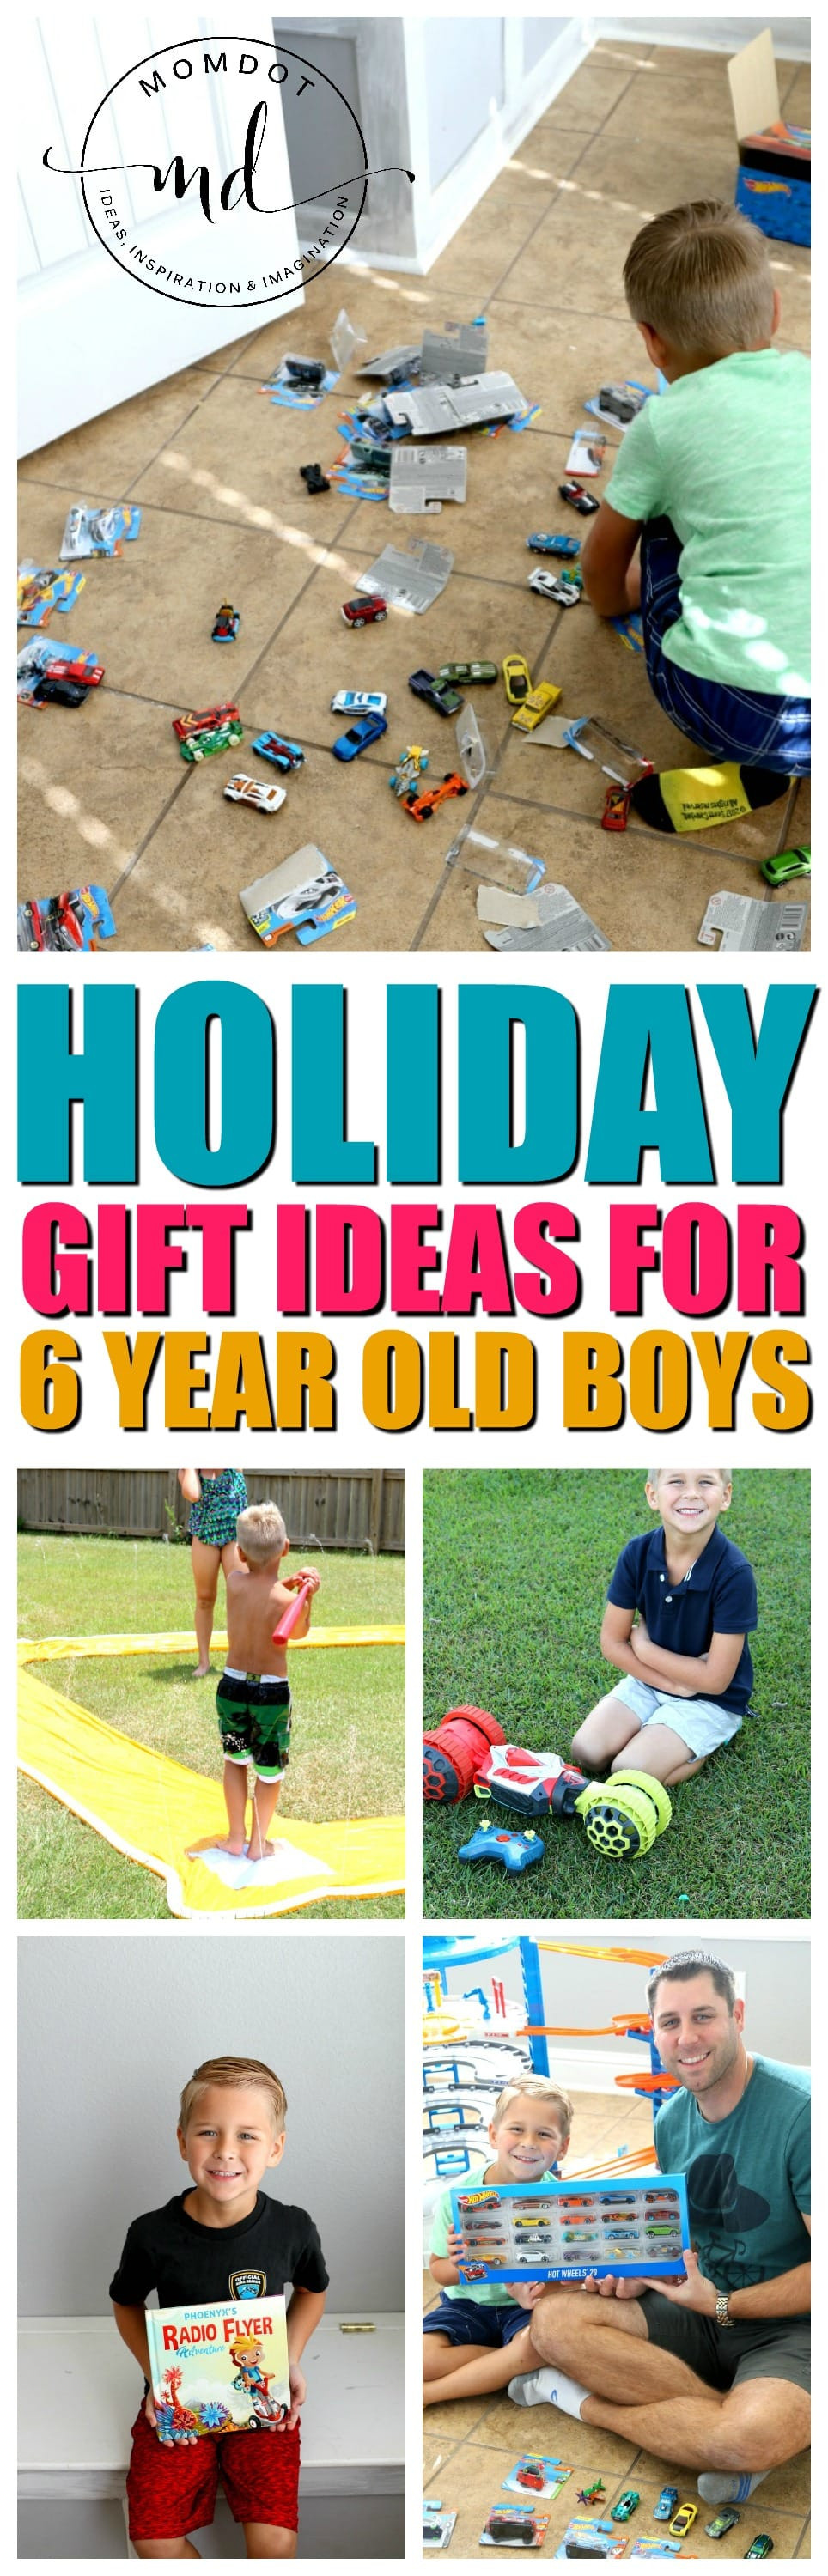 Best ideas about Gift Ideas For Boys Age 6 . Save or Pin Gift Ideas for 6 Year Old Boys Now.